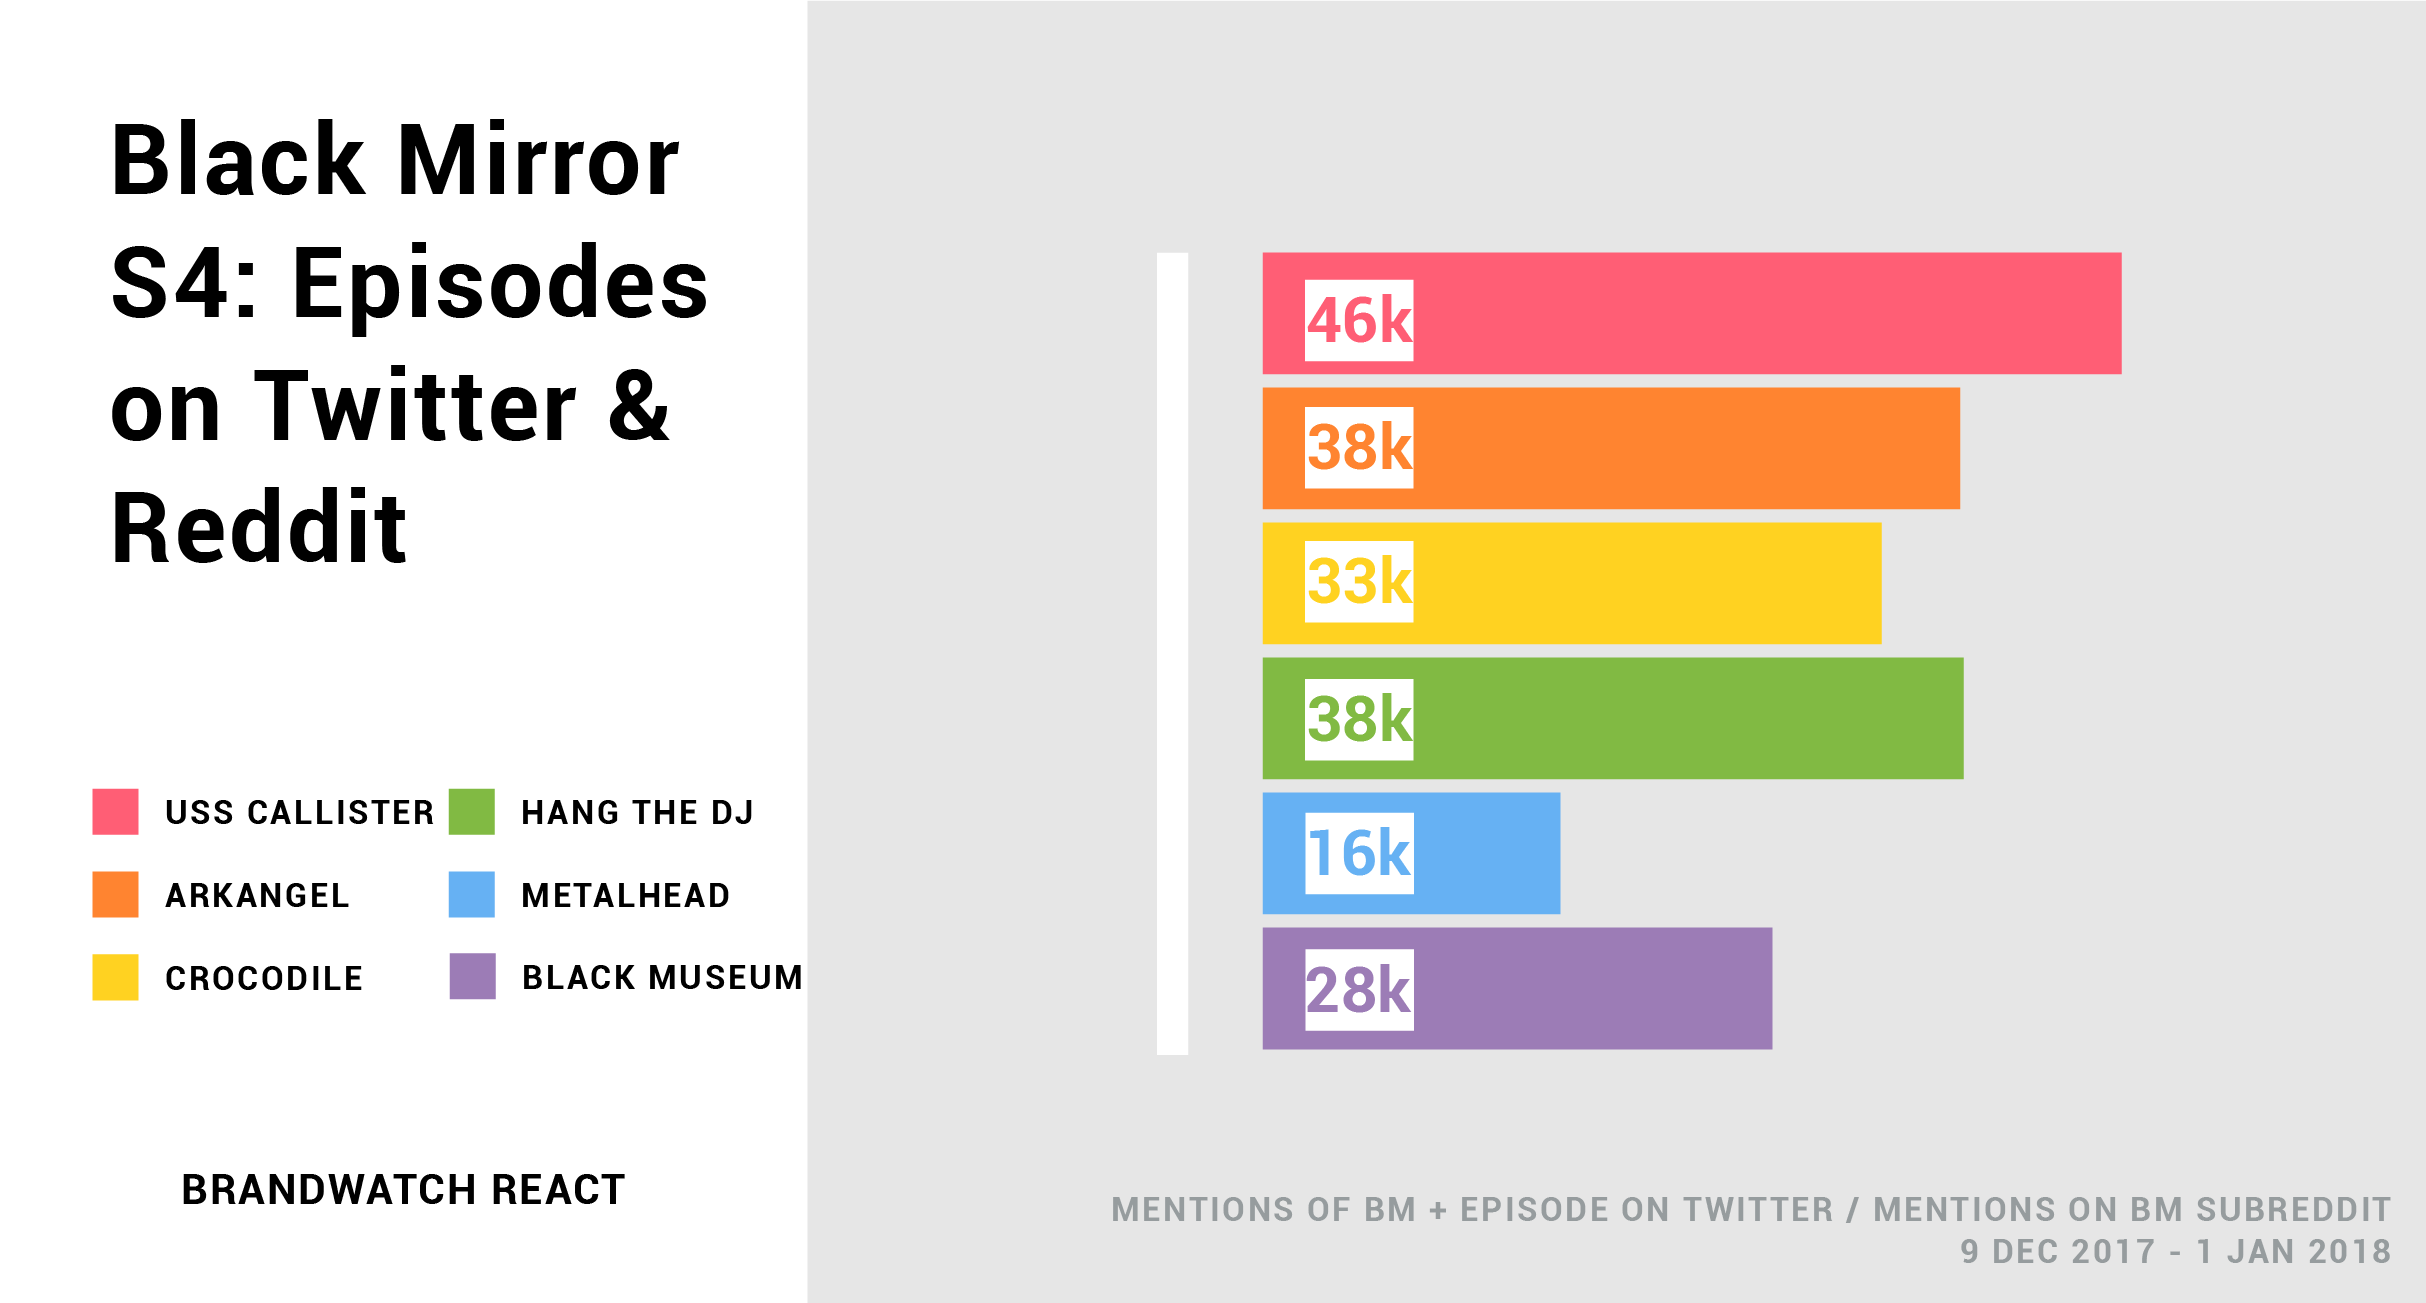 Bar chart shows the mention volumes on Twitter and Reddit of each Black Mirror Season 4 episode. USS Callister is most talked about. Metalhead is least.